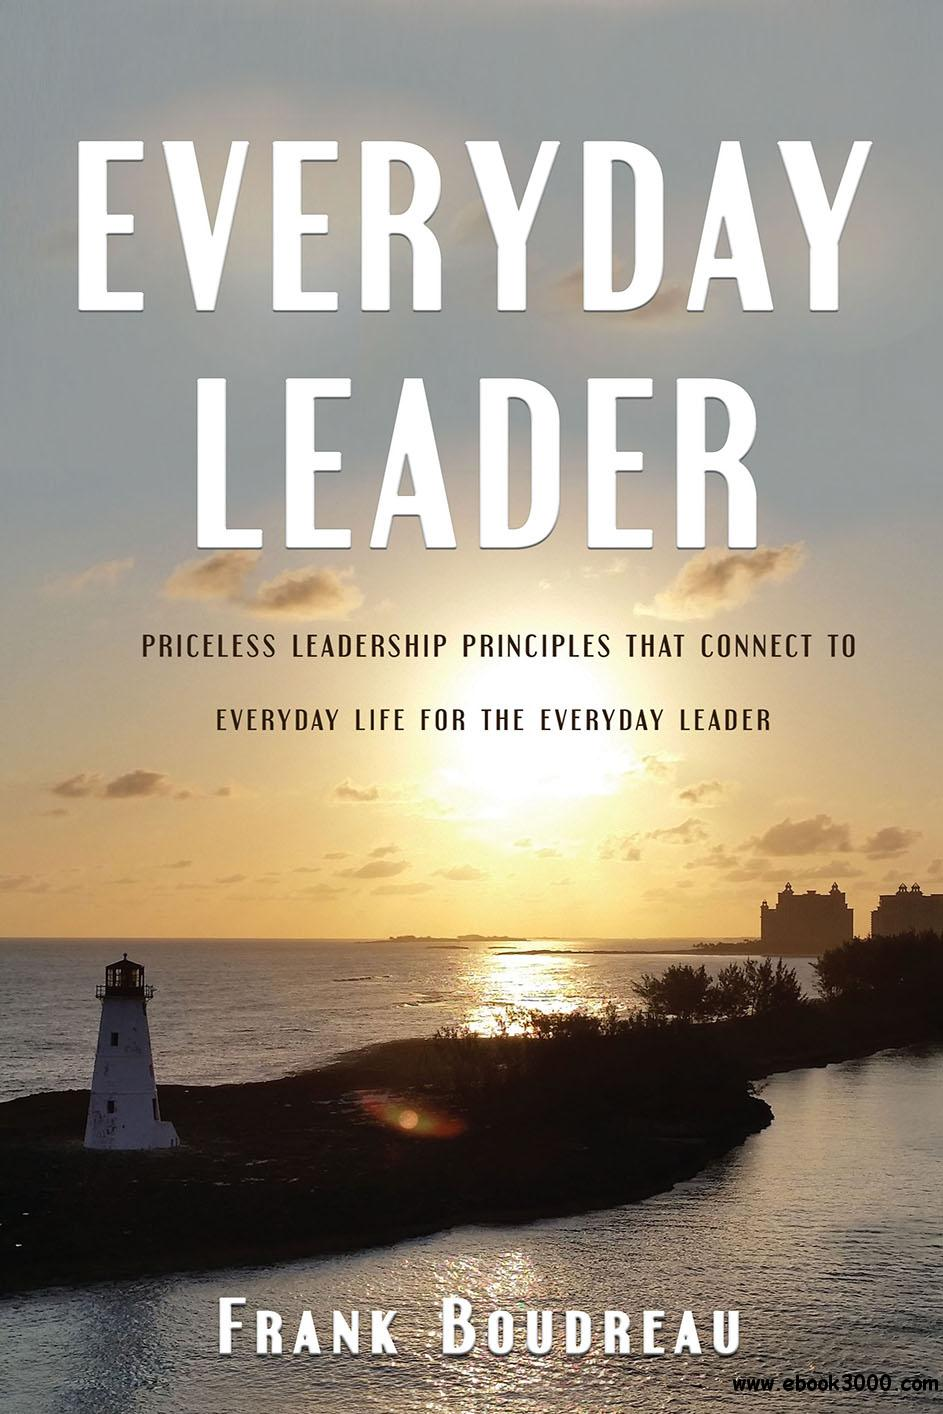 Everyday Leader: Priceless Leadership Principles that Connect to Everyday Life for the Everyday Leader